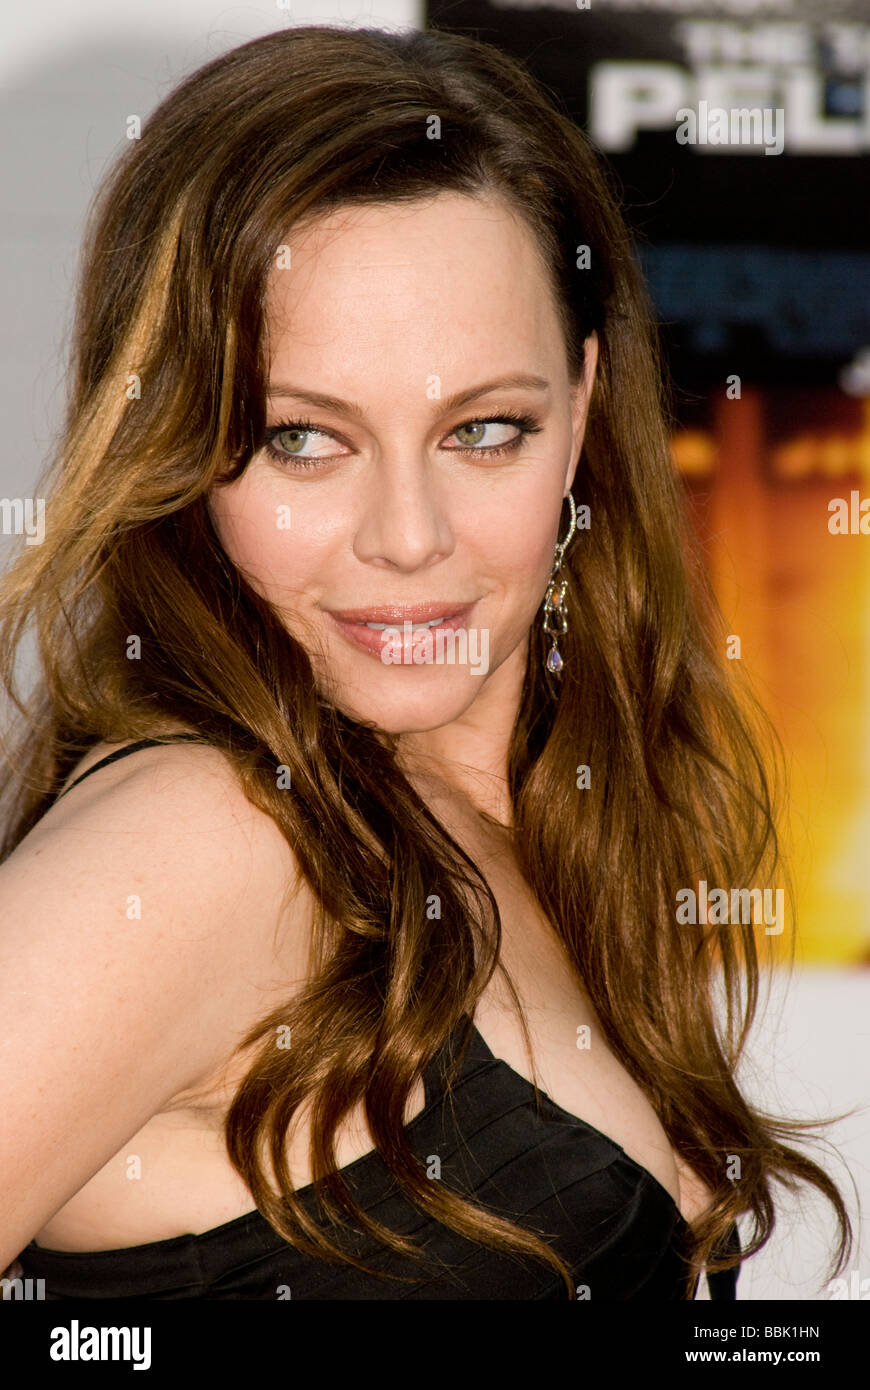 LOS ANGELES - JUNE 4: Actress Melinda Clarke arrives at the premiere of new film, 'Taking of Pelham 123' - Stock Image